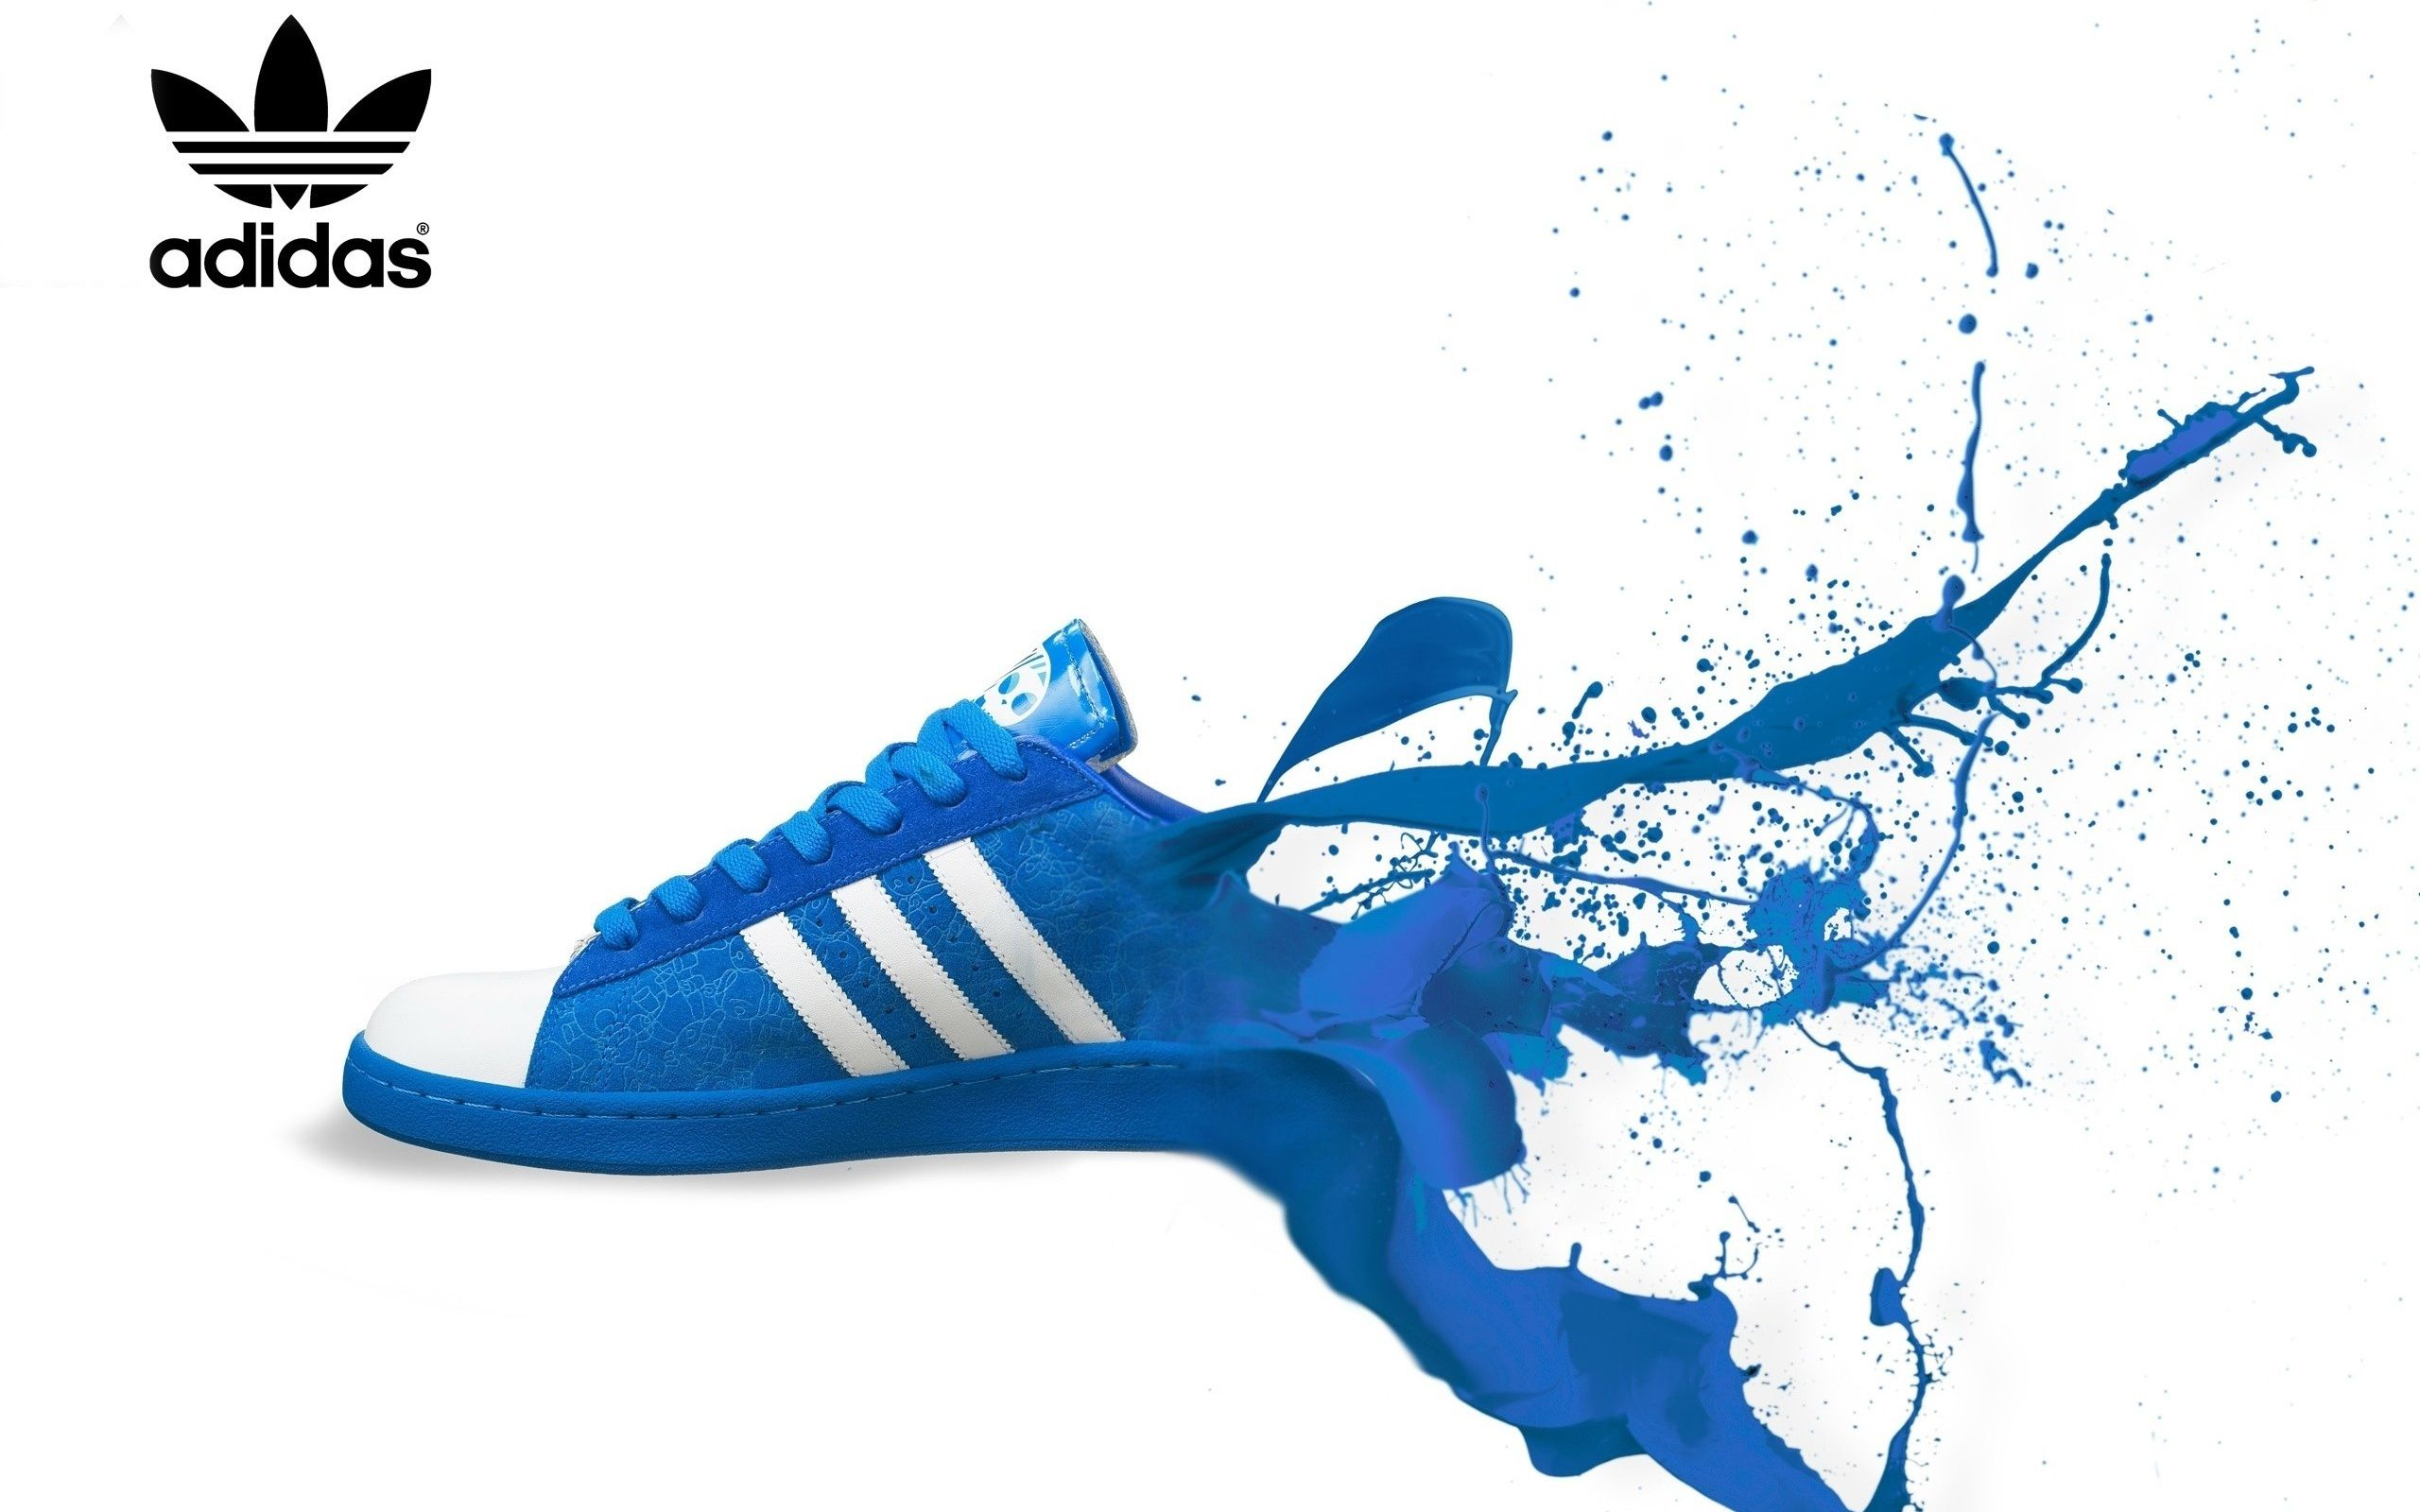 Adidas 2560x1600 Wallpapers Download  Desktop HD And